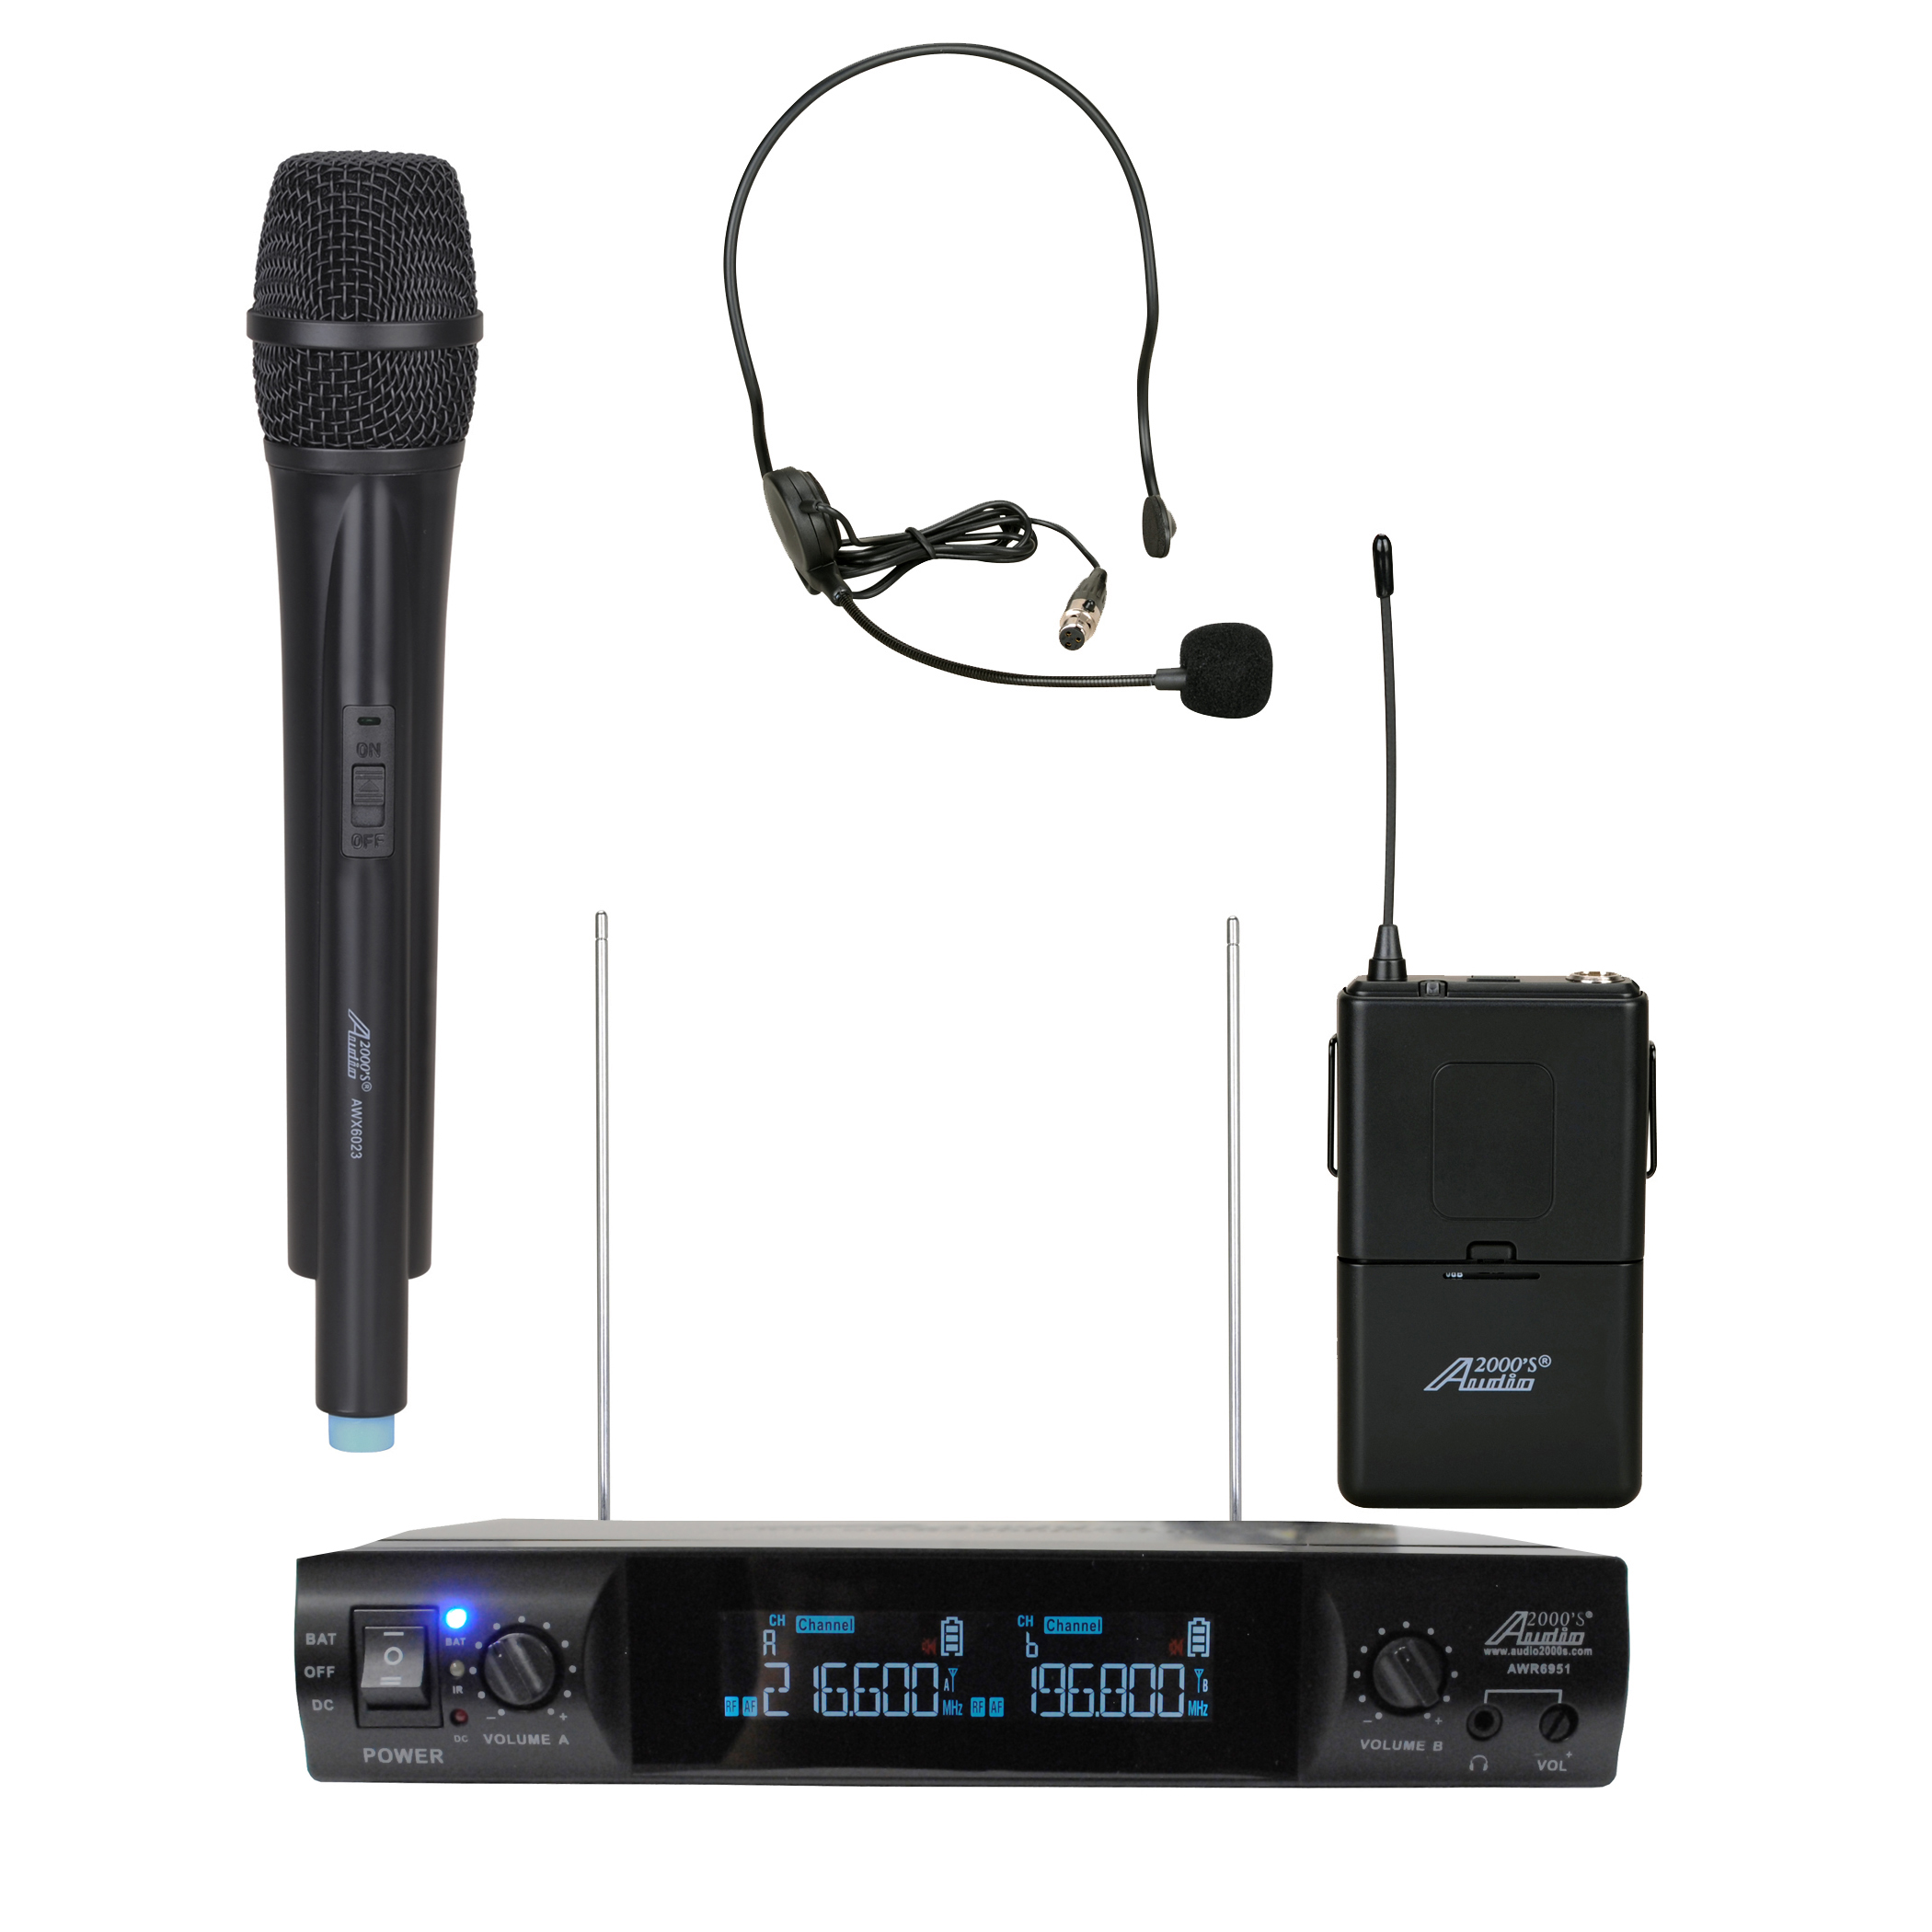 Audio2000's AWM6951VX VHF Dual Channel Portable Wireless Handheld & Headset Microphone by